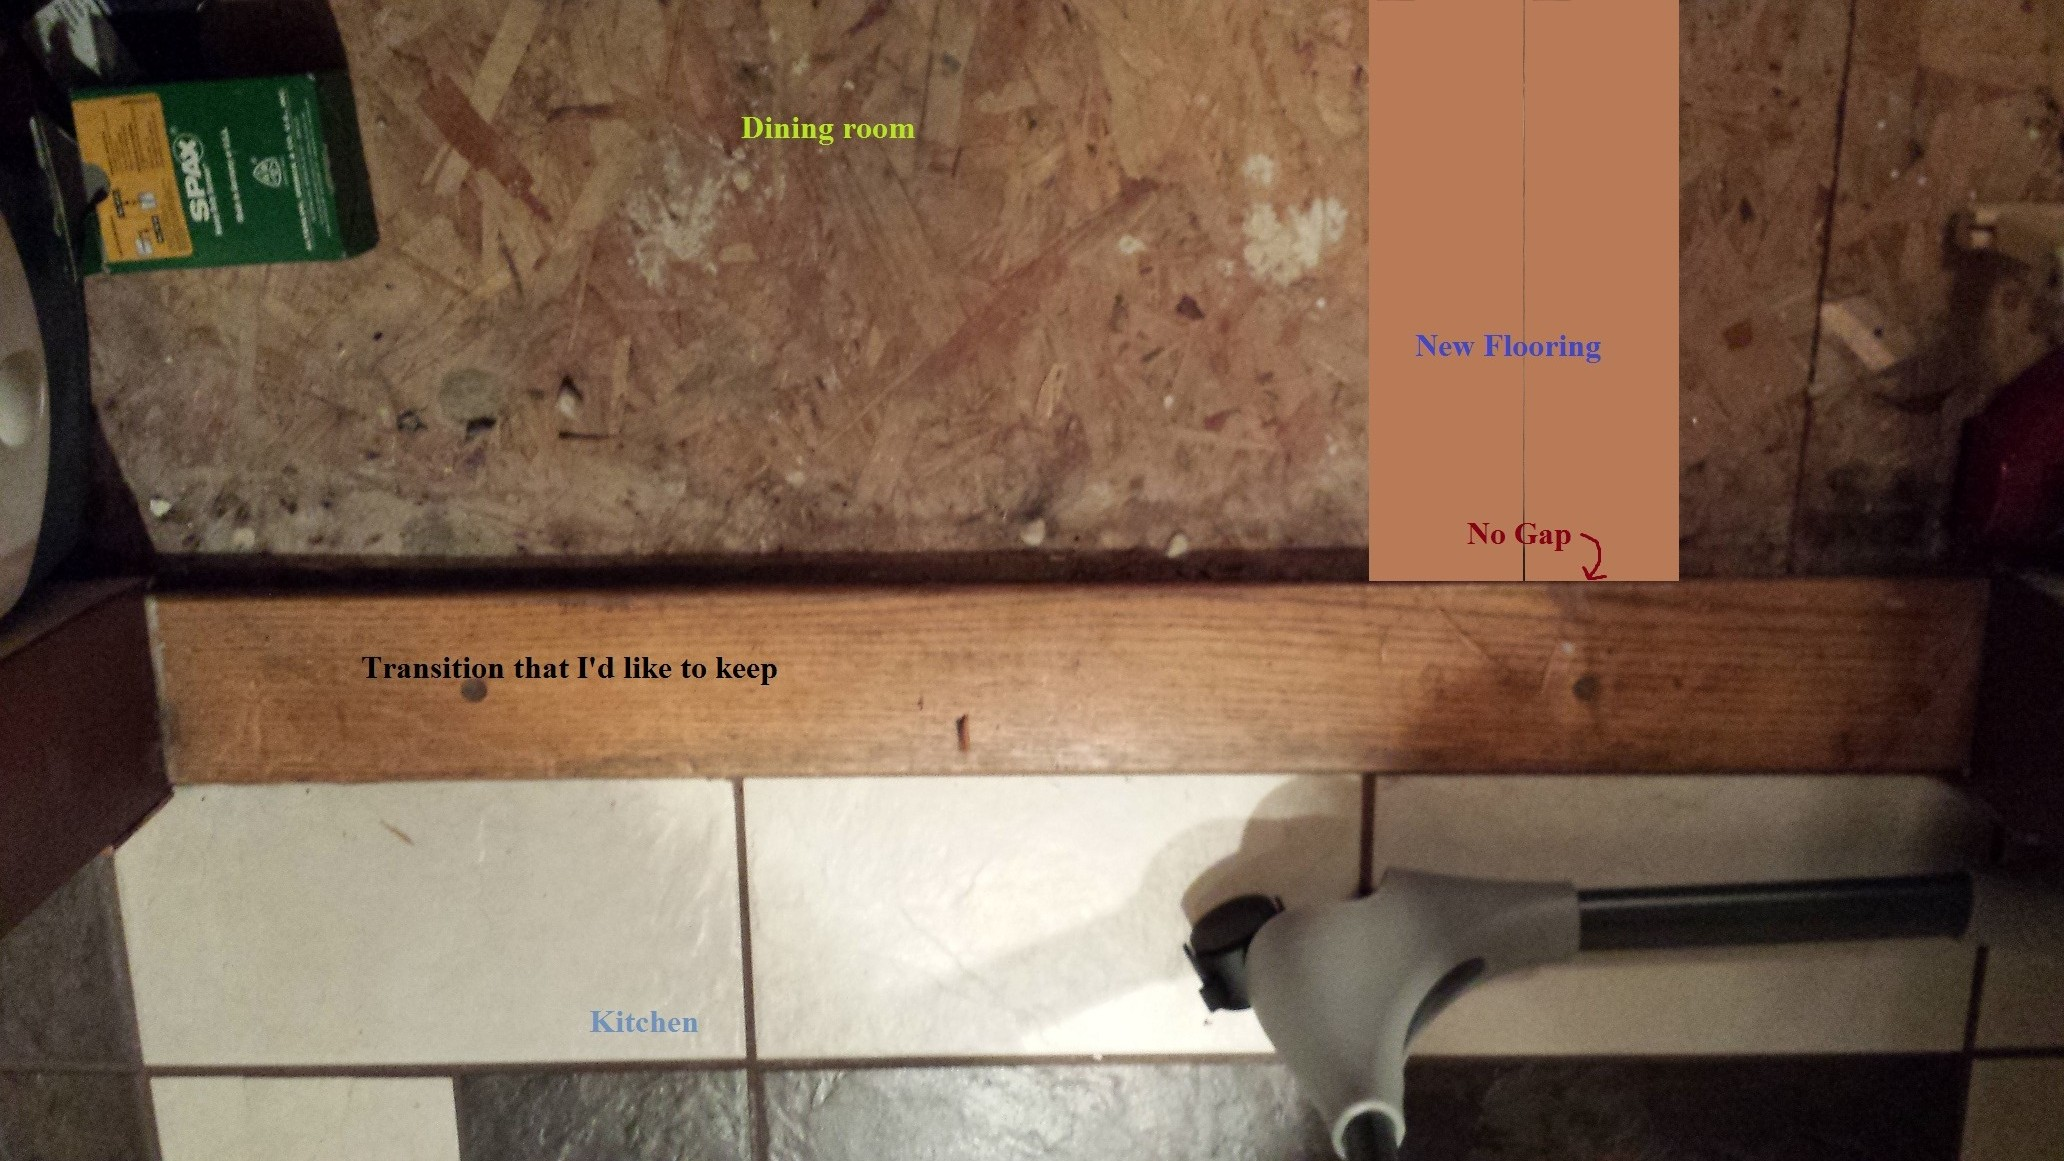 flooring  Do I really need an expansion gap around the